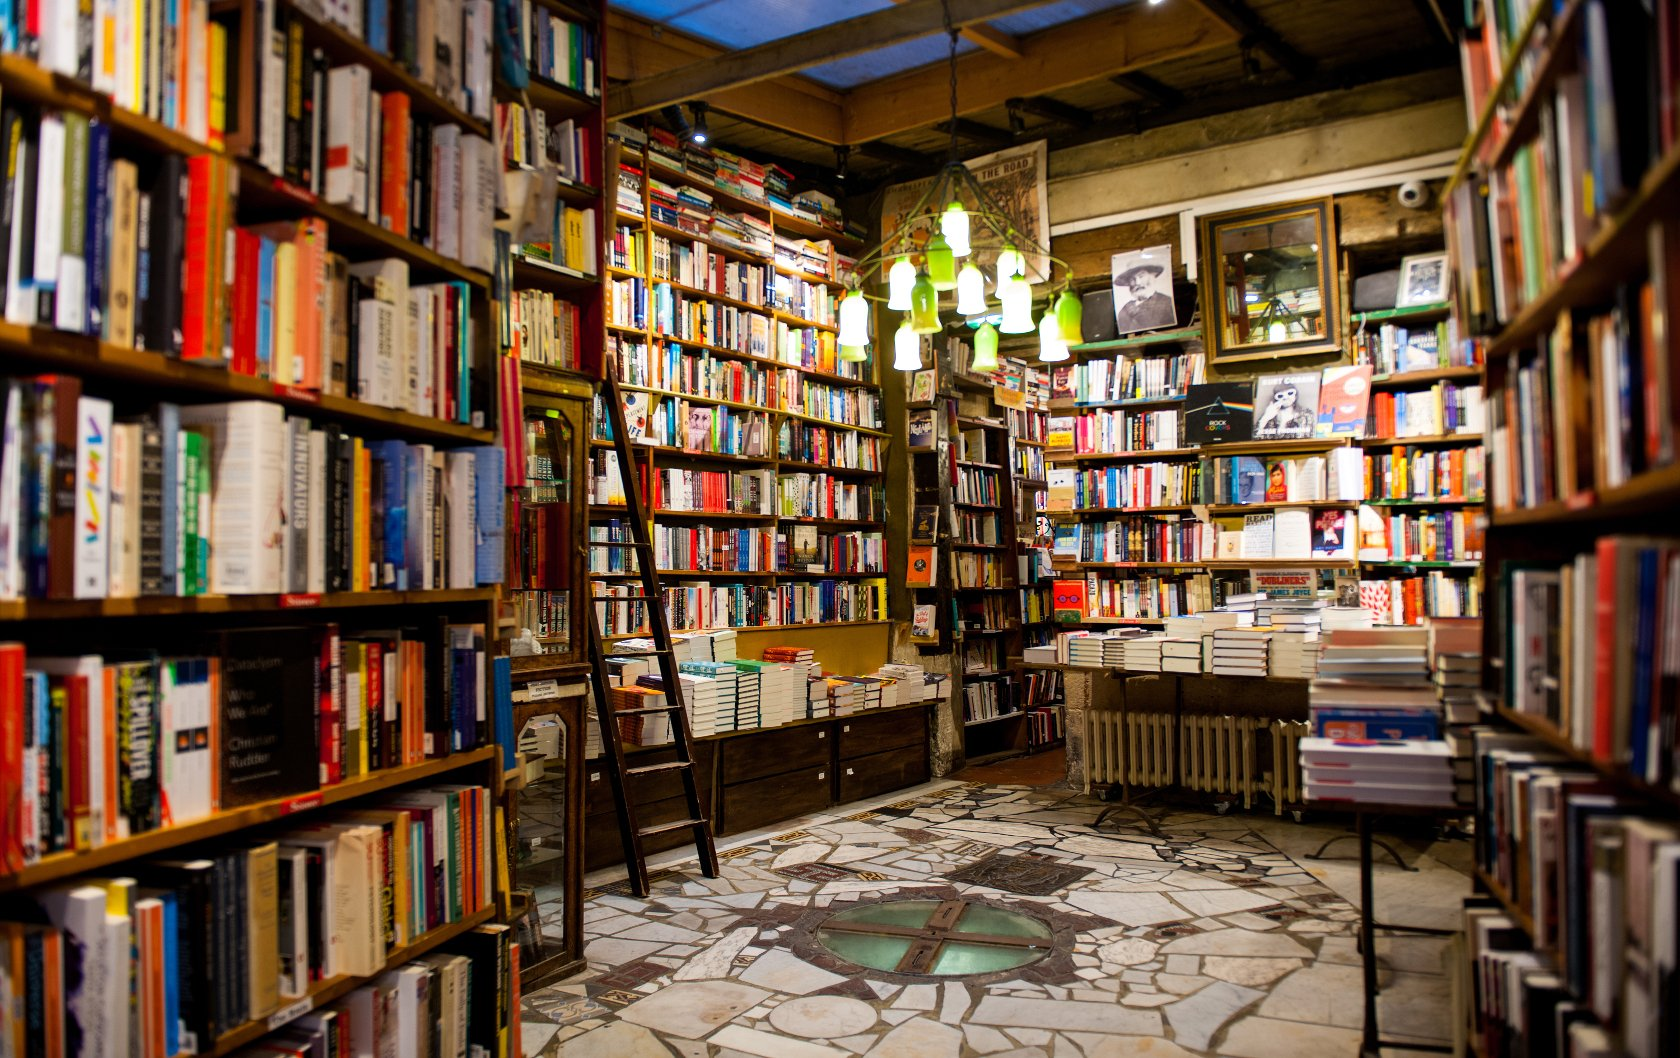 shakespeare paris company bookstore interior bookstores bibliophile kiren every should visit france credit